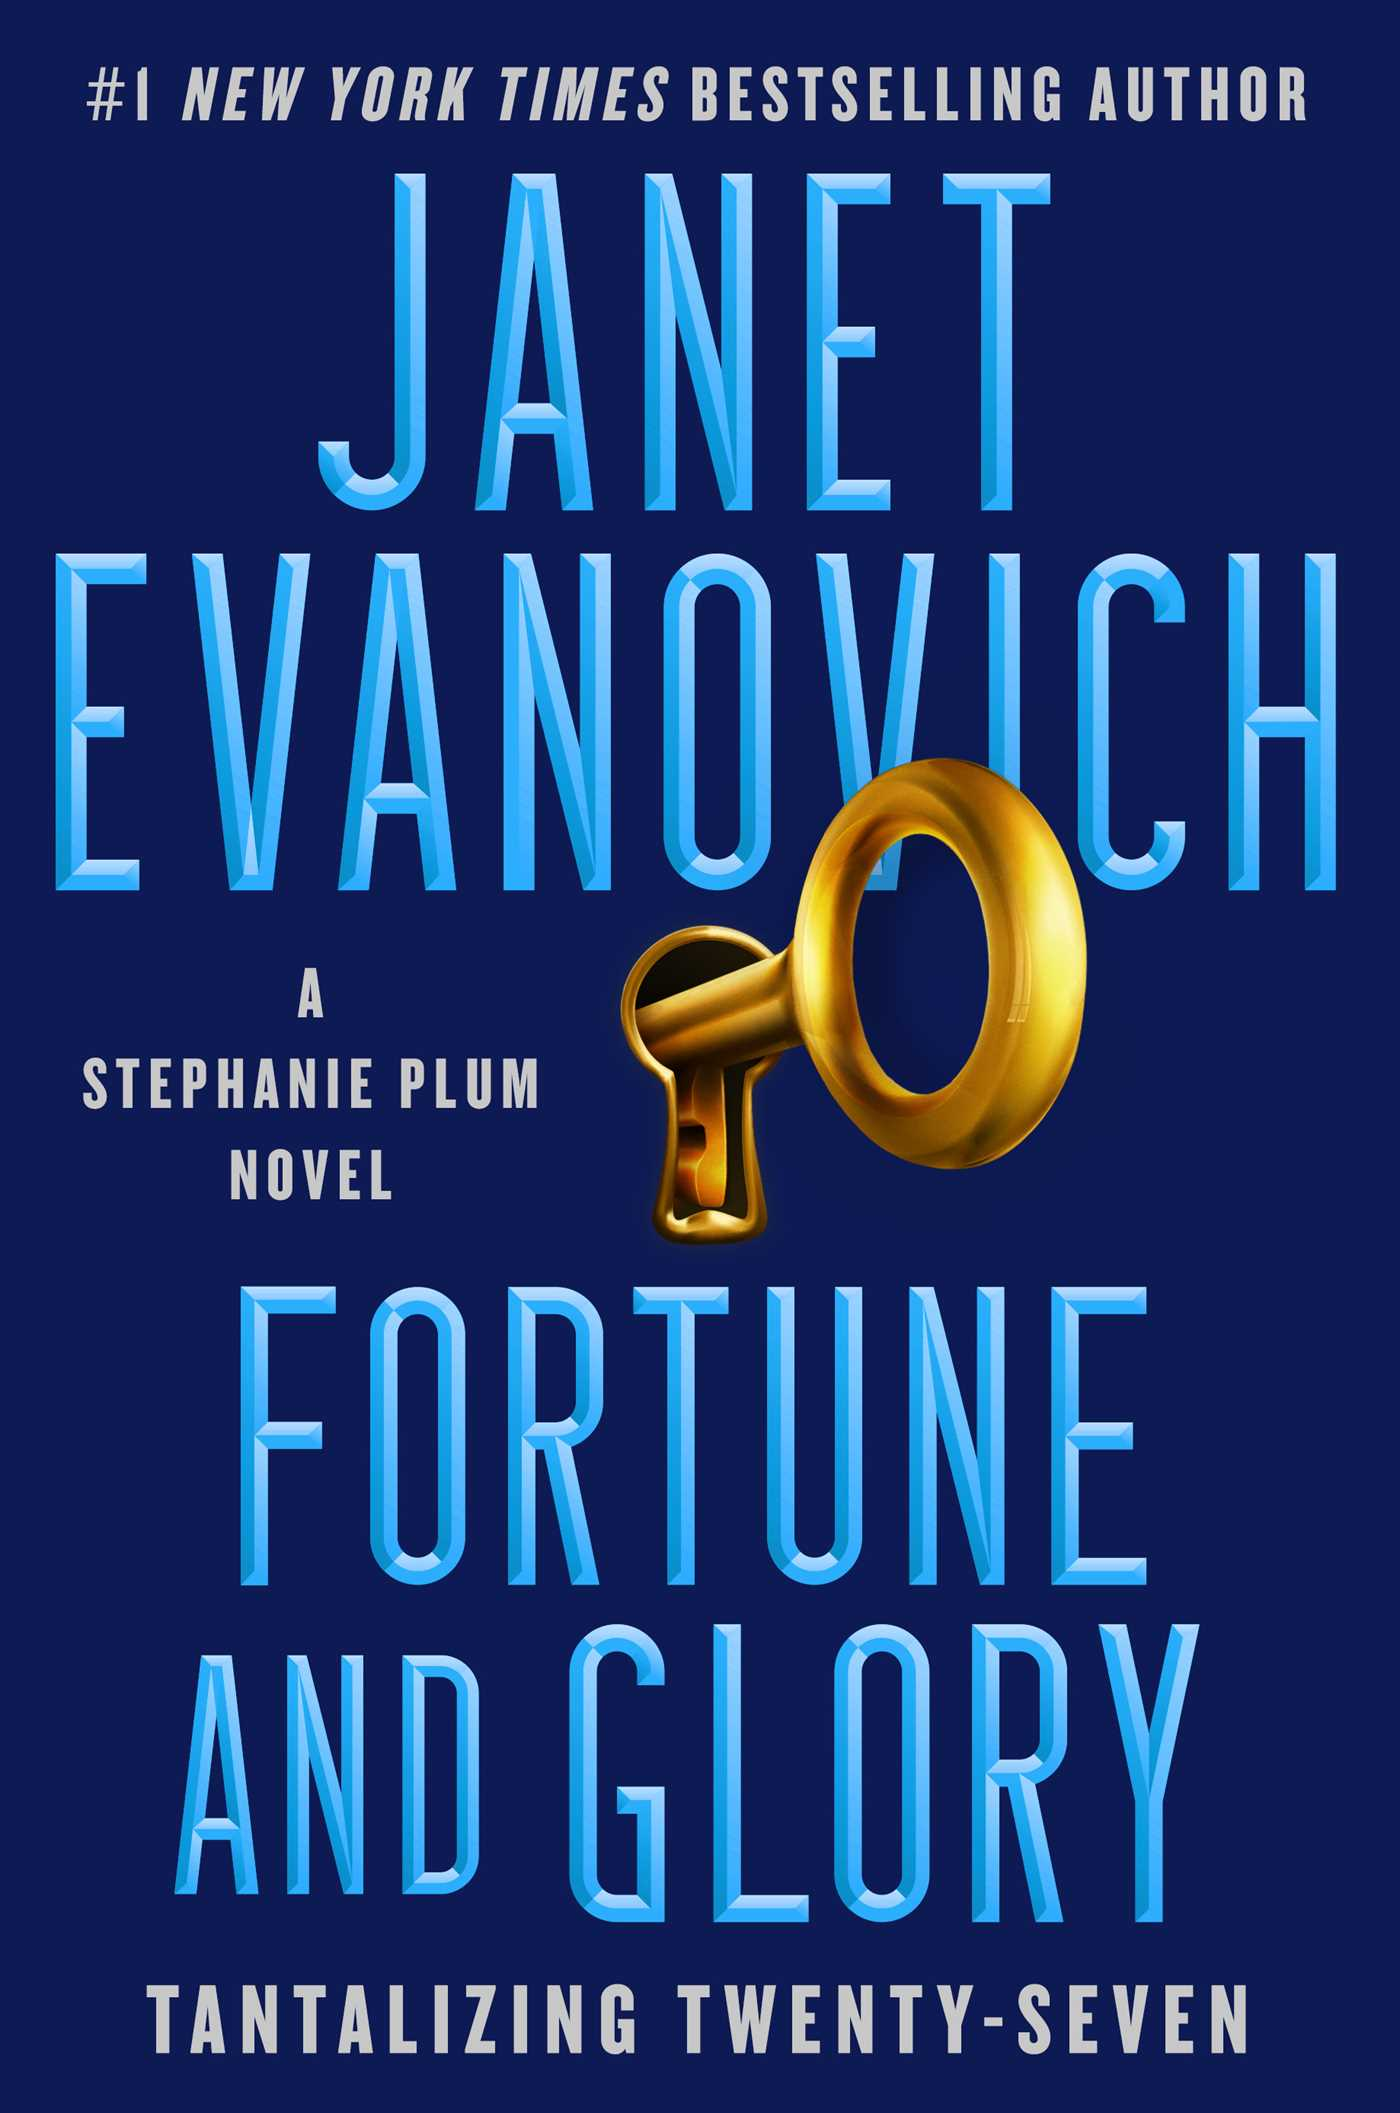 Book Review: Fortune and Glory by Janet Evanovich